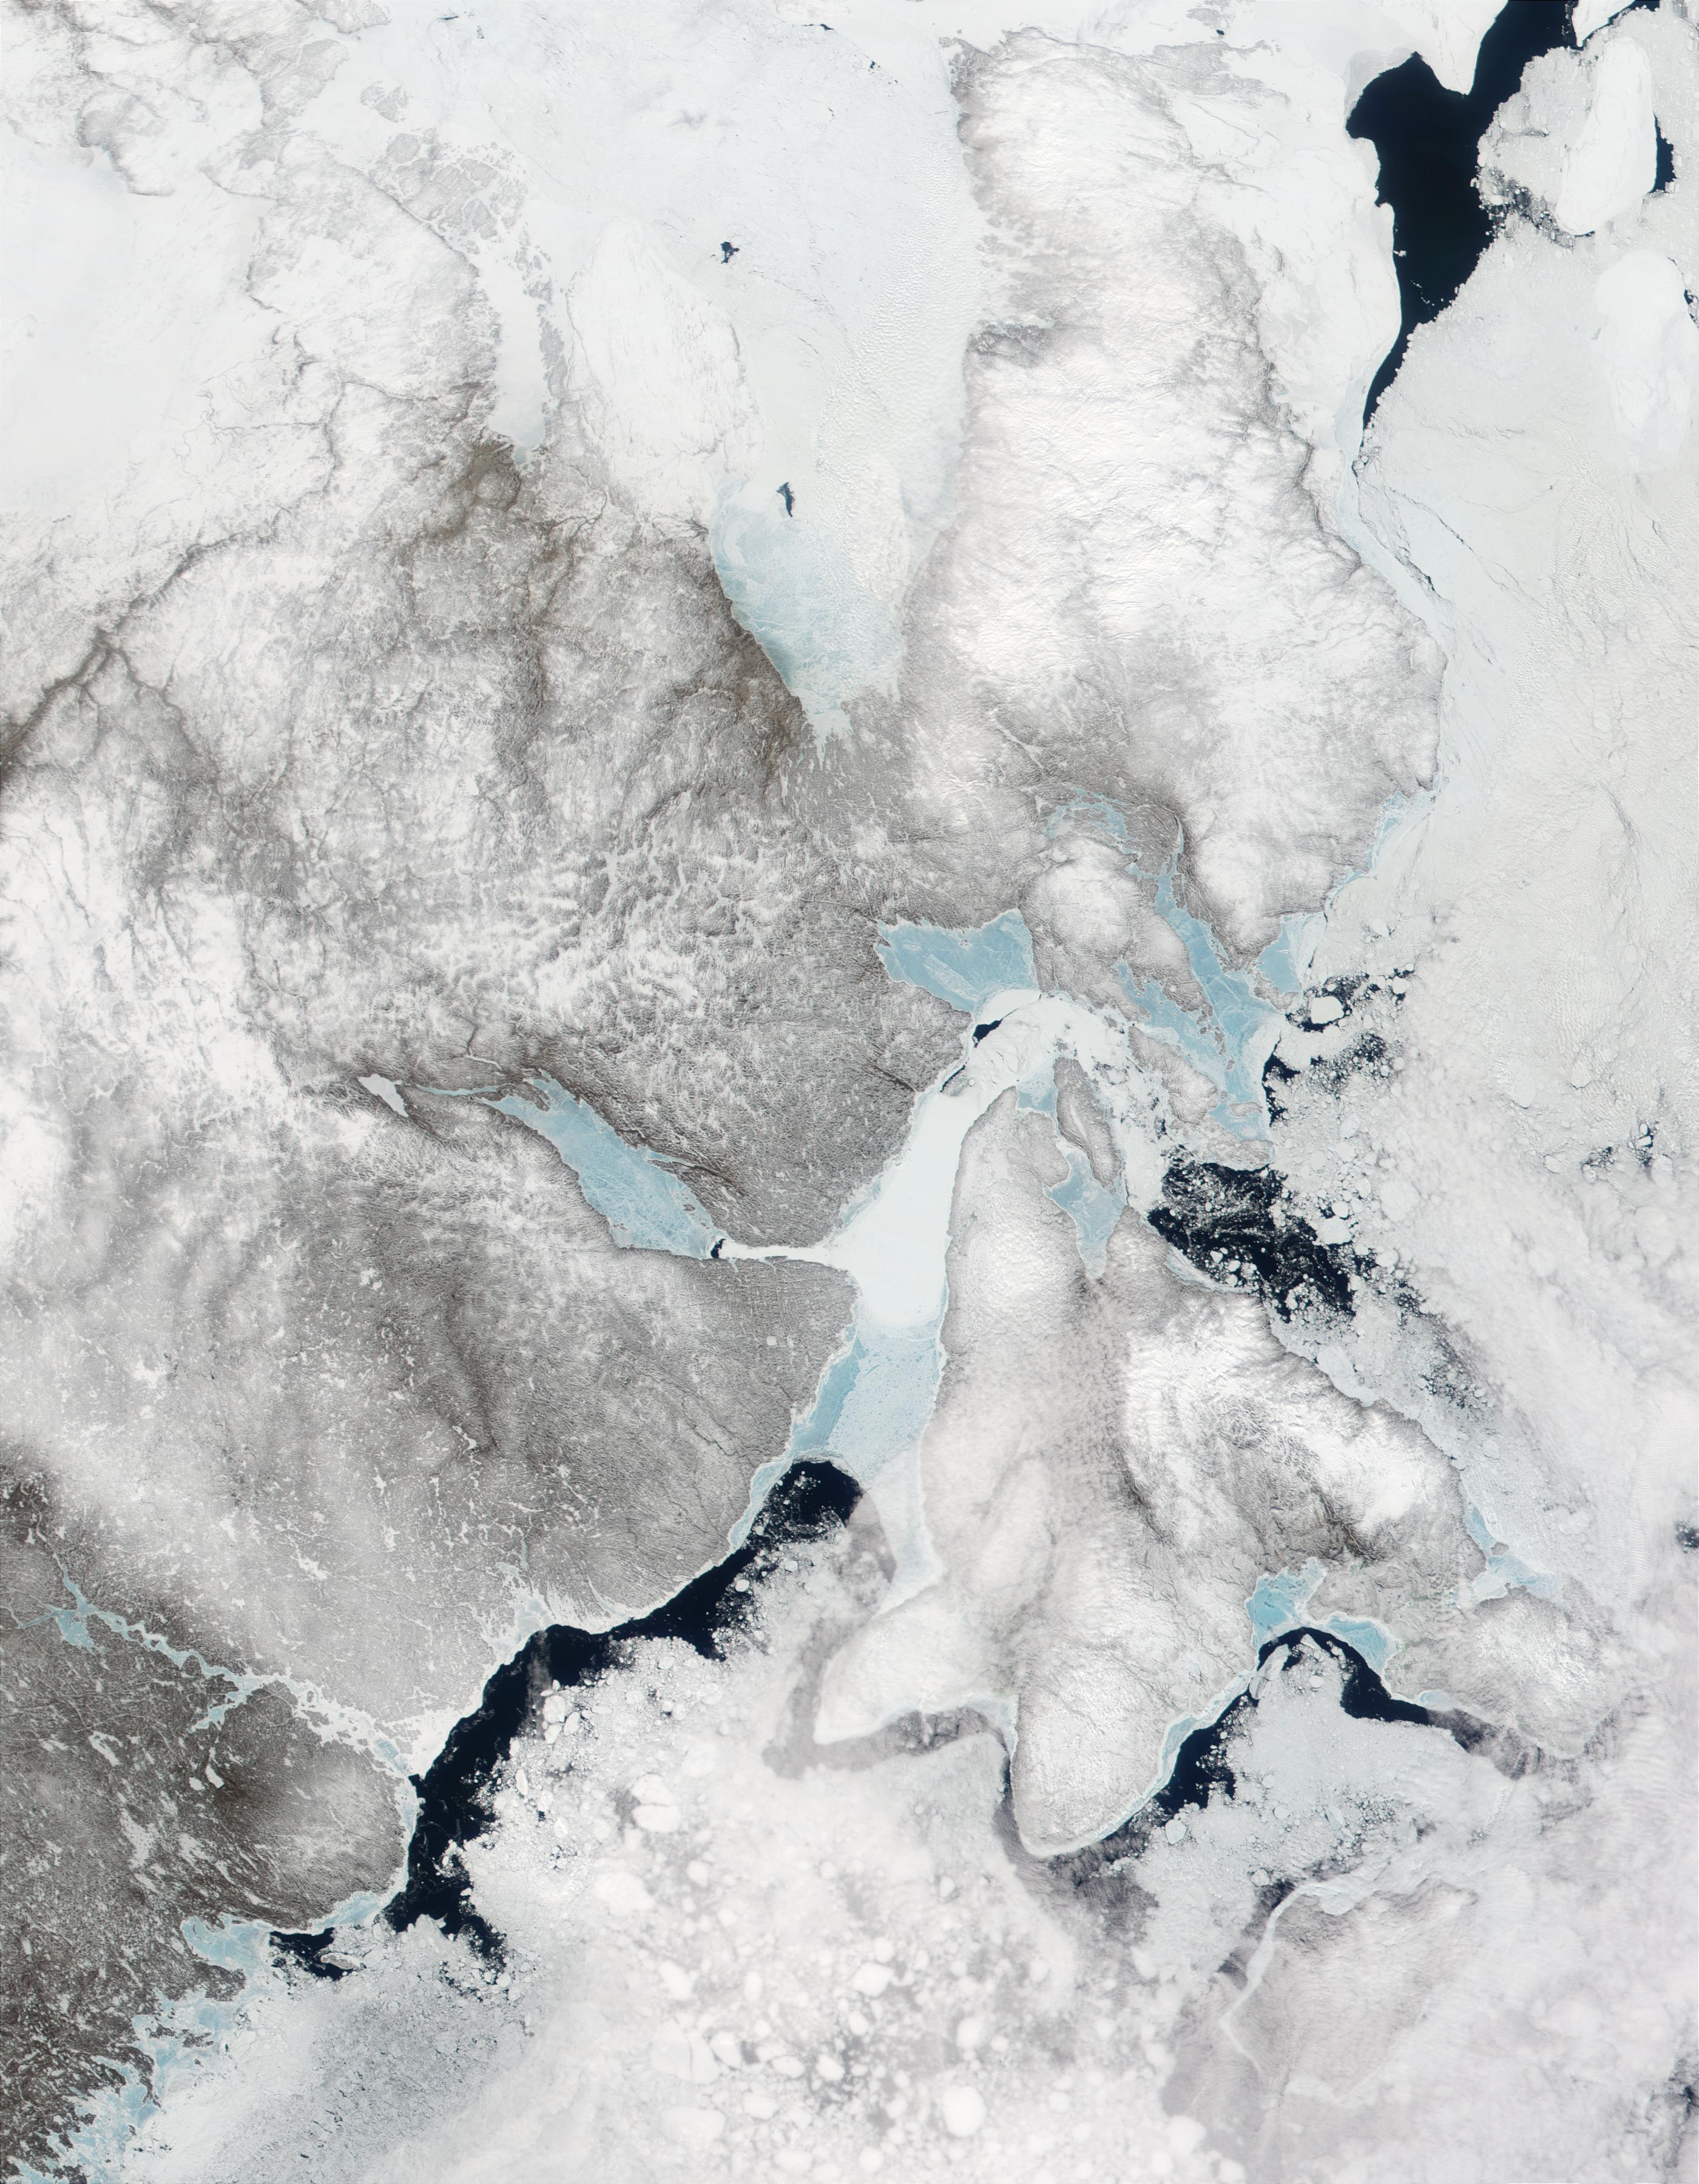 Melville Peninsula and Southampton Island, Northern Canada